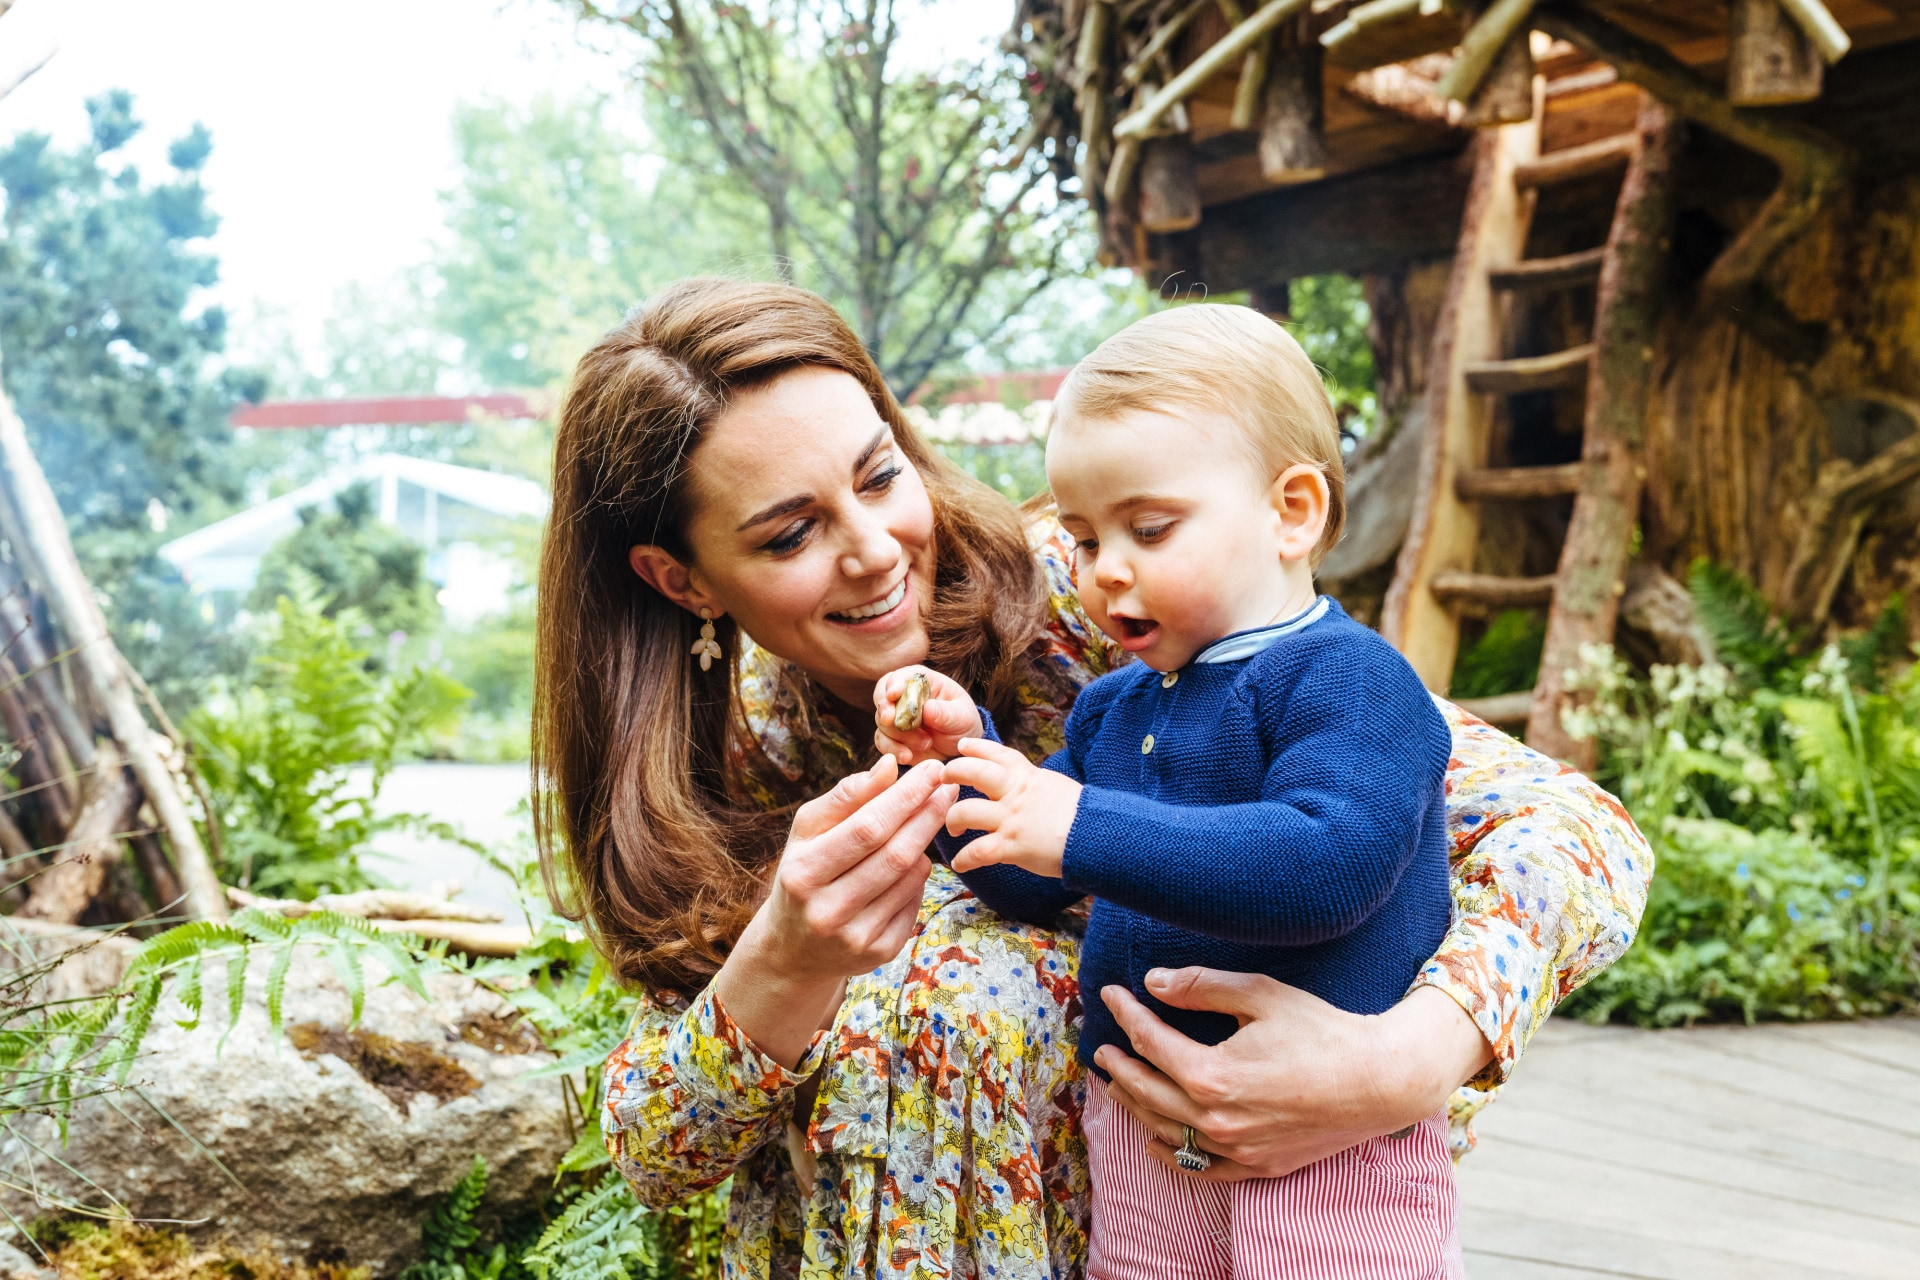 Kate Middleton and Prince William share intimate and sweet photos of a family day out